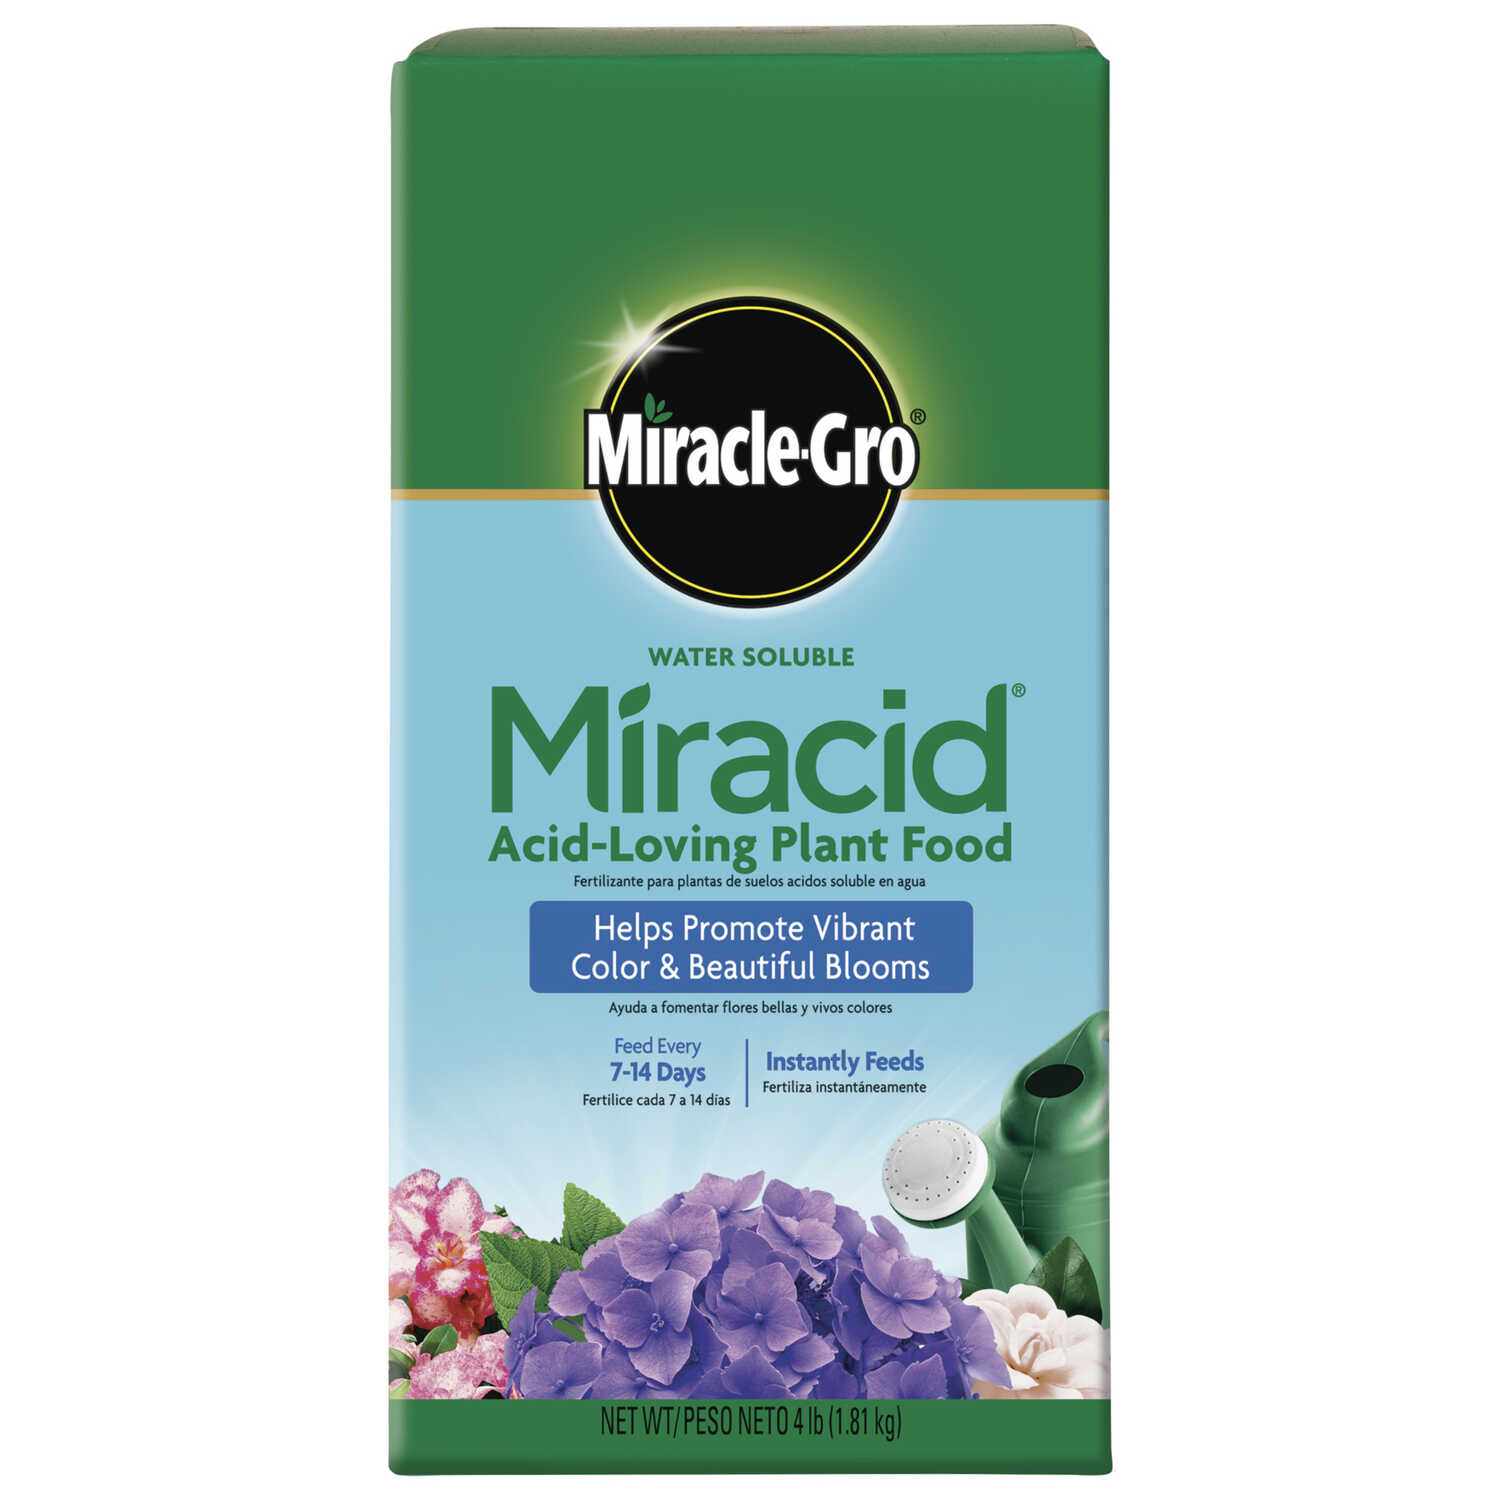 Miracle-Gro  Miracid  Powder  Plant Food  4 lb.